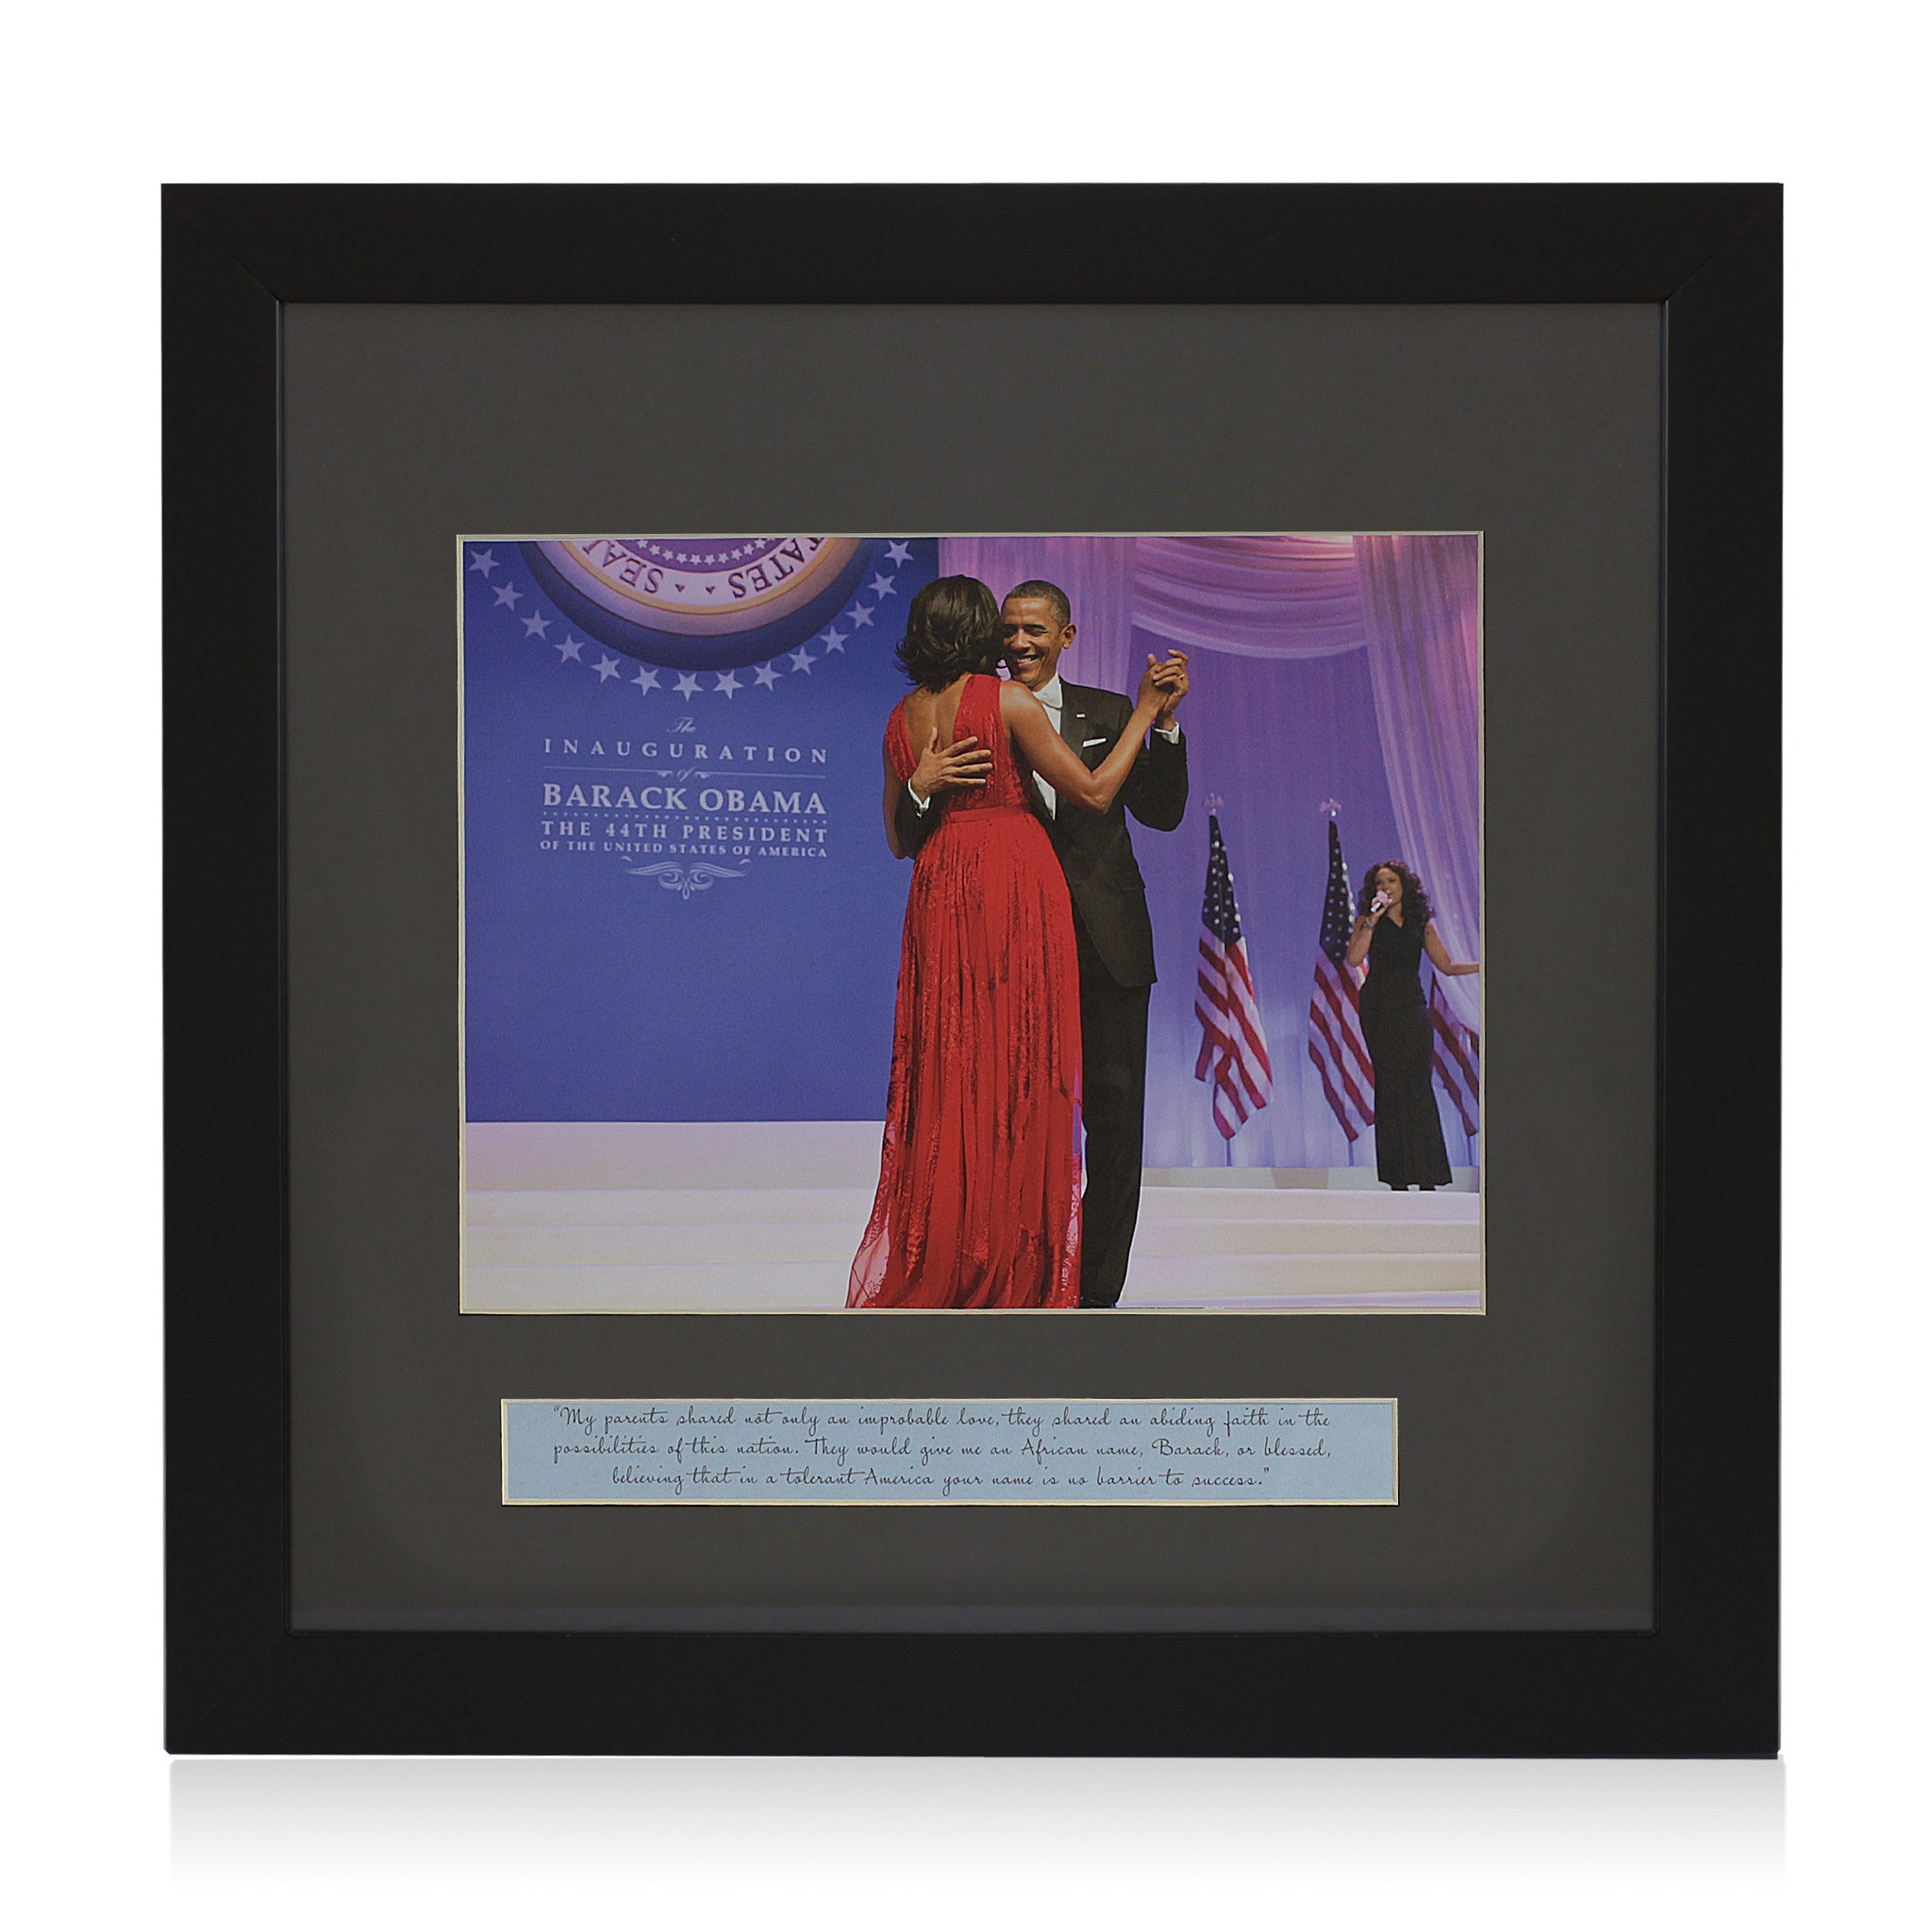 Blessed: Barack and Michelle Obama (Inaugaration Ball) Framed Artwork